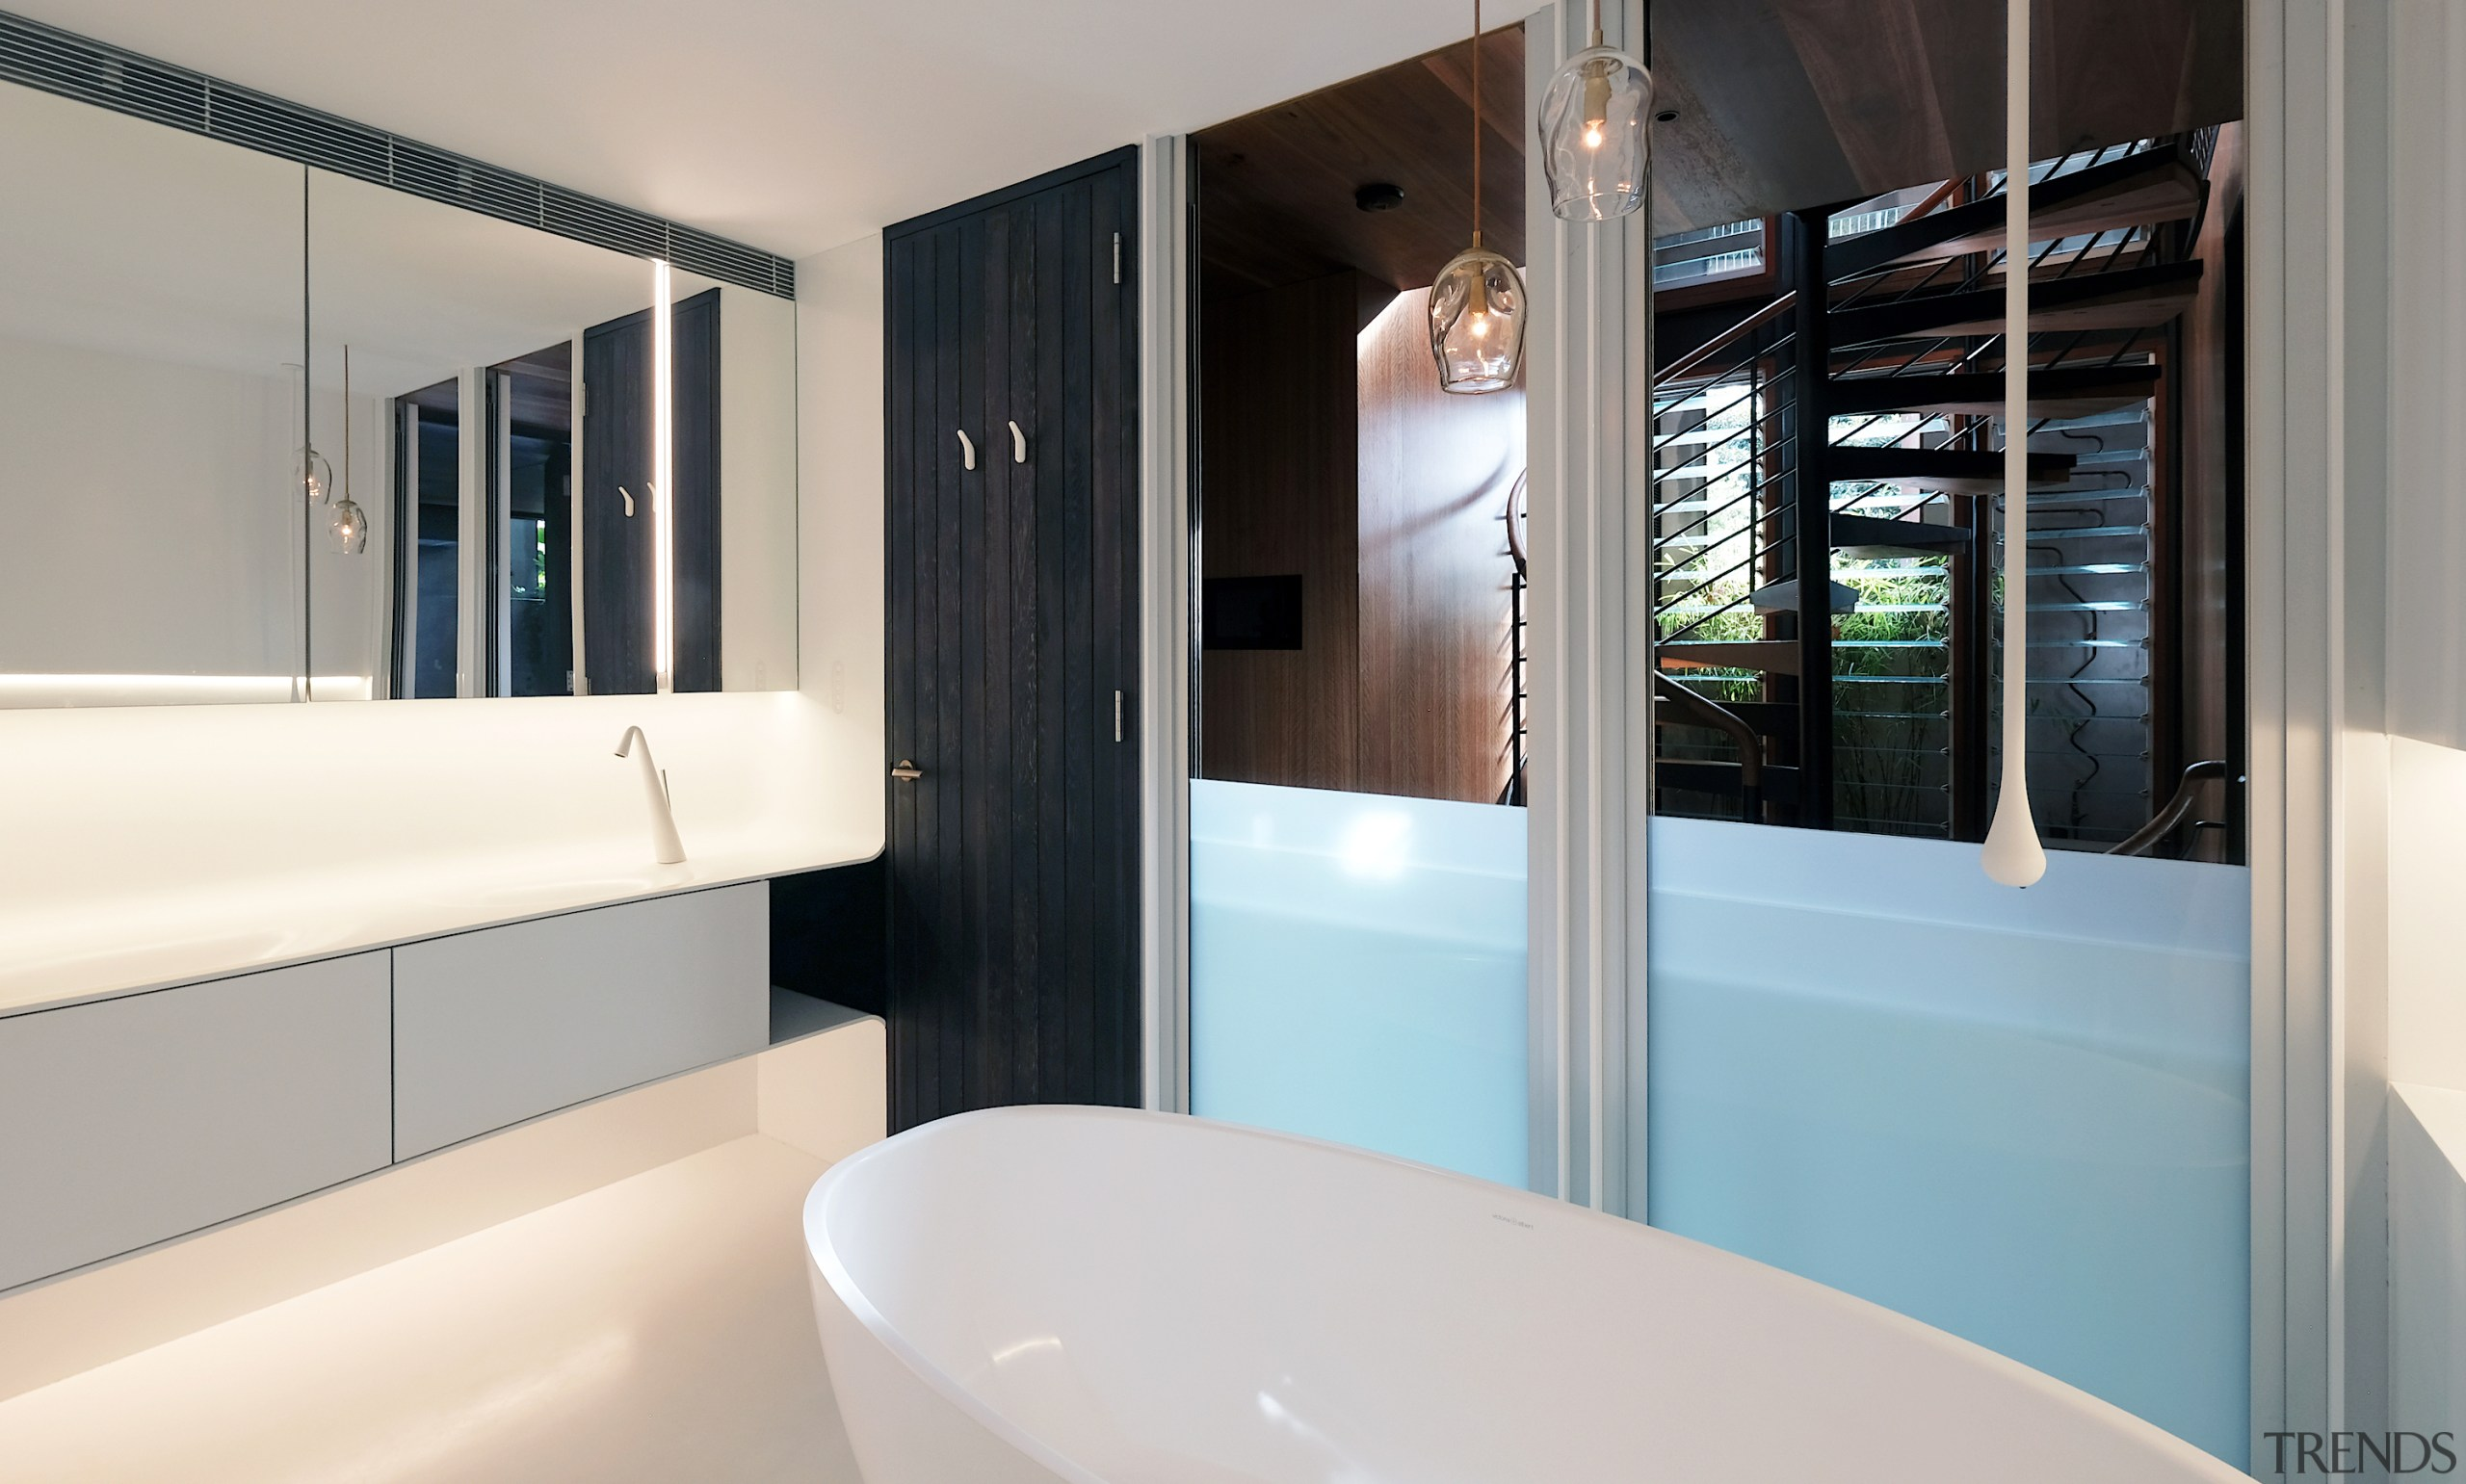 When this bathroom's frameless sash windows are open, architecture, bathroom, bathtub, building, floor, furniture, home, house, interior design, plumbing fixture, property, real estate, room, sink, tap, gray